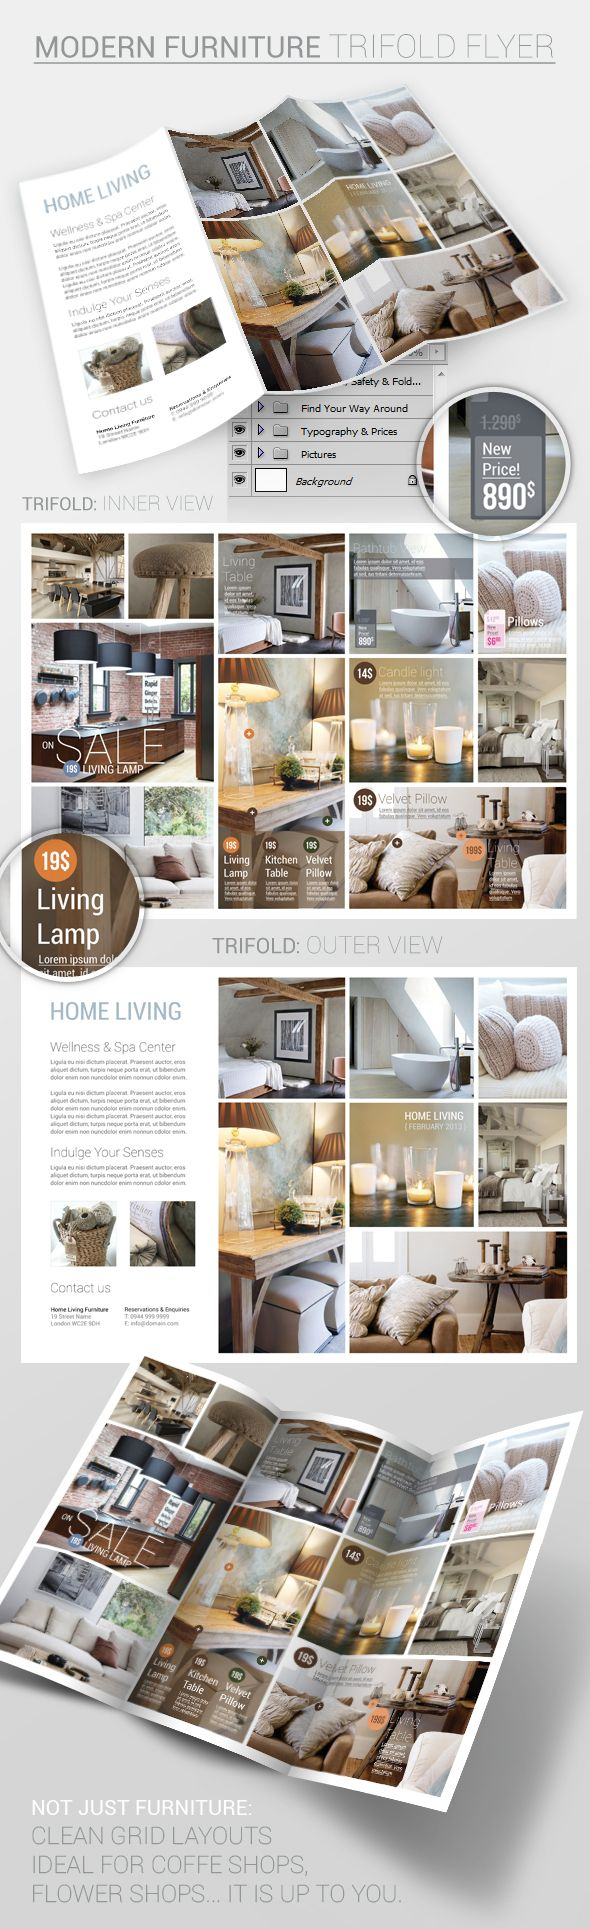 best images about real estate flyers real estate buy furniture trifold flyer template by joebanana on graphicriver modern furniture is a clean looking trifold template grid layout